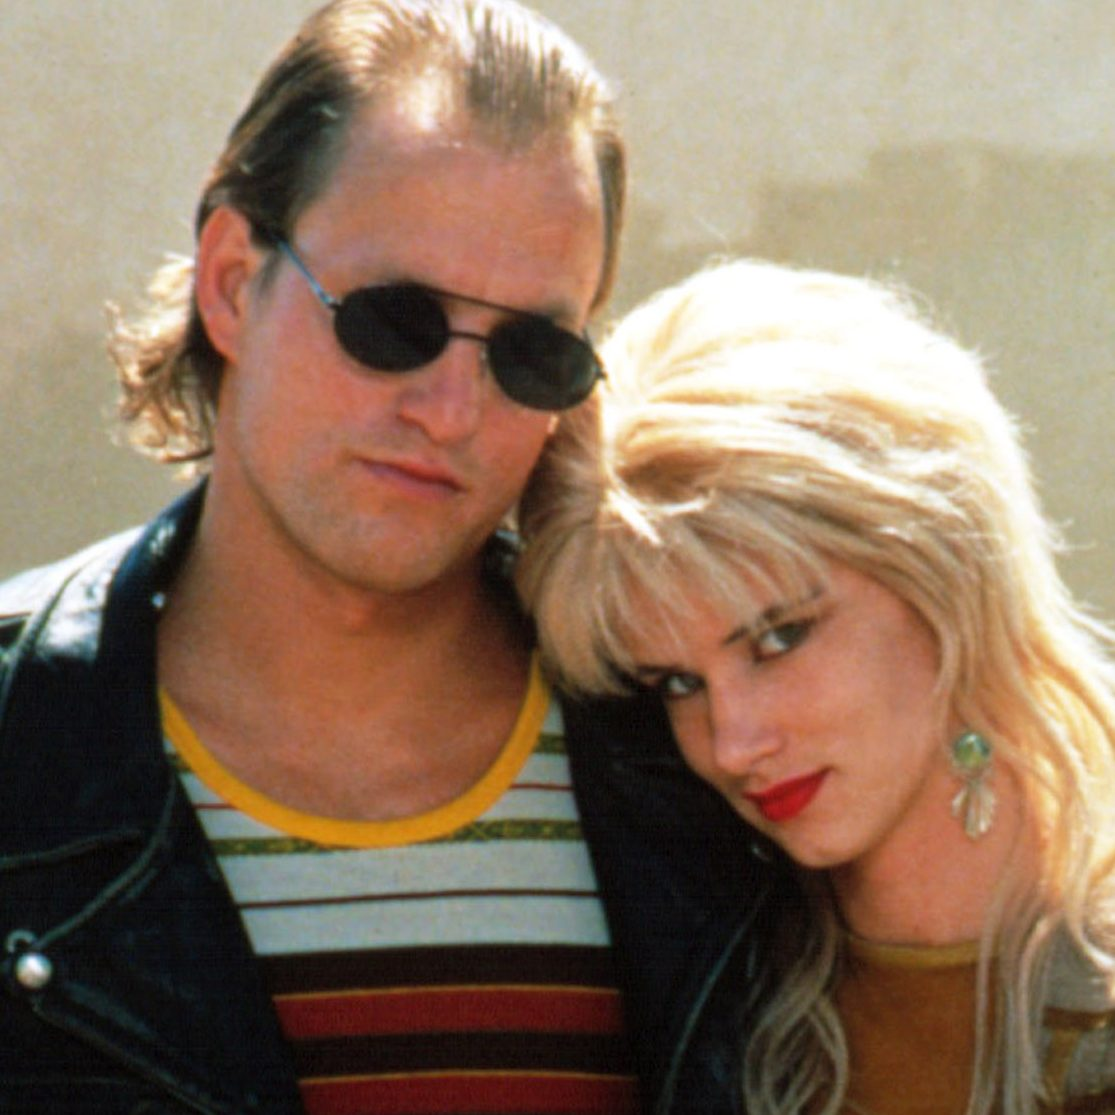 natural born killers 2 e1600266778546 20 Things You Didn't Know About The Classic Film True Romance